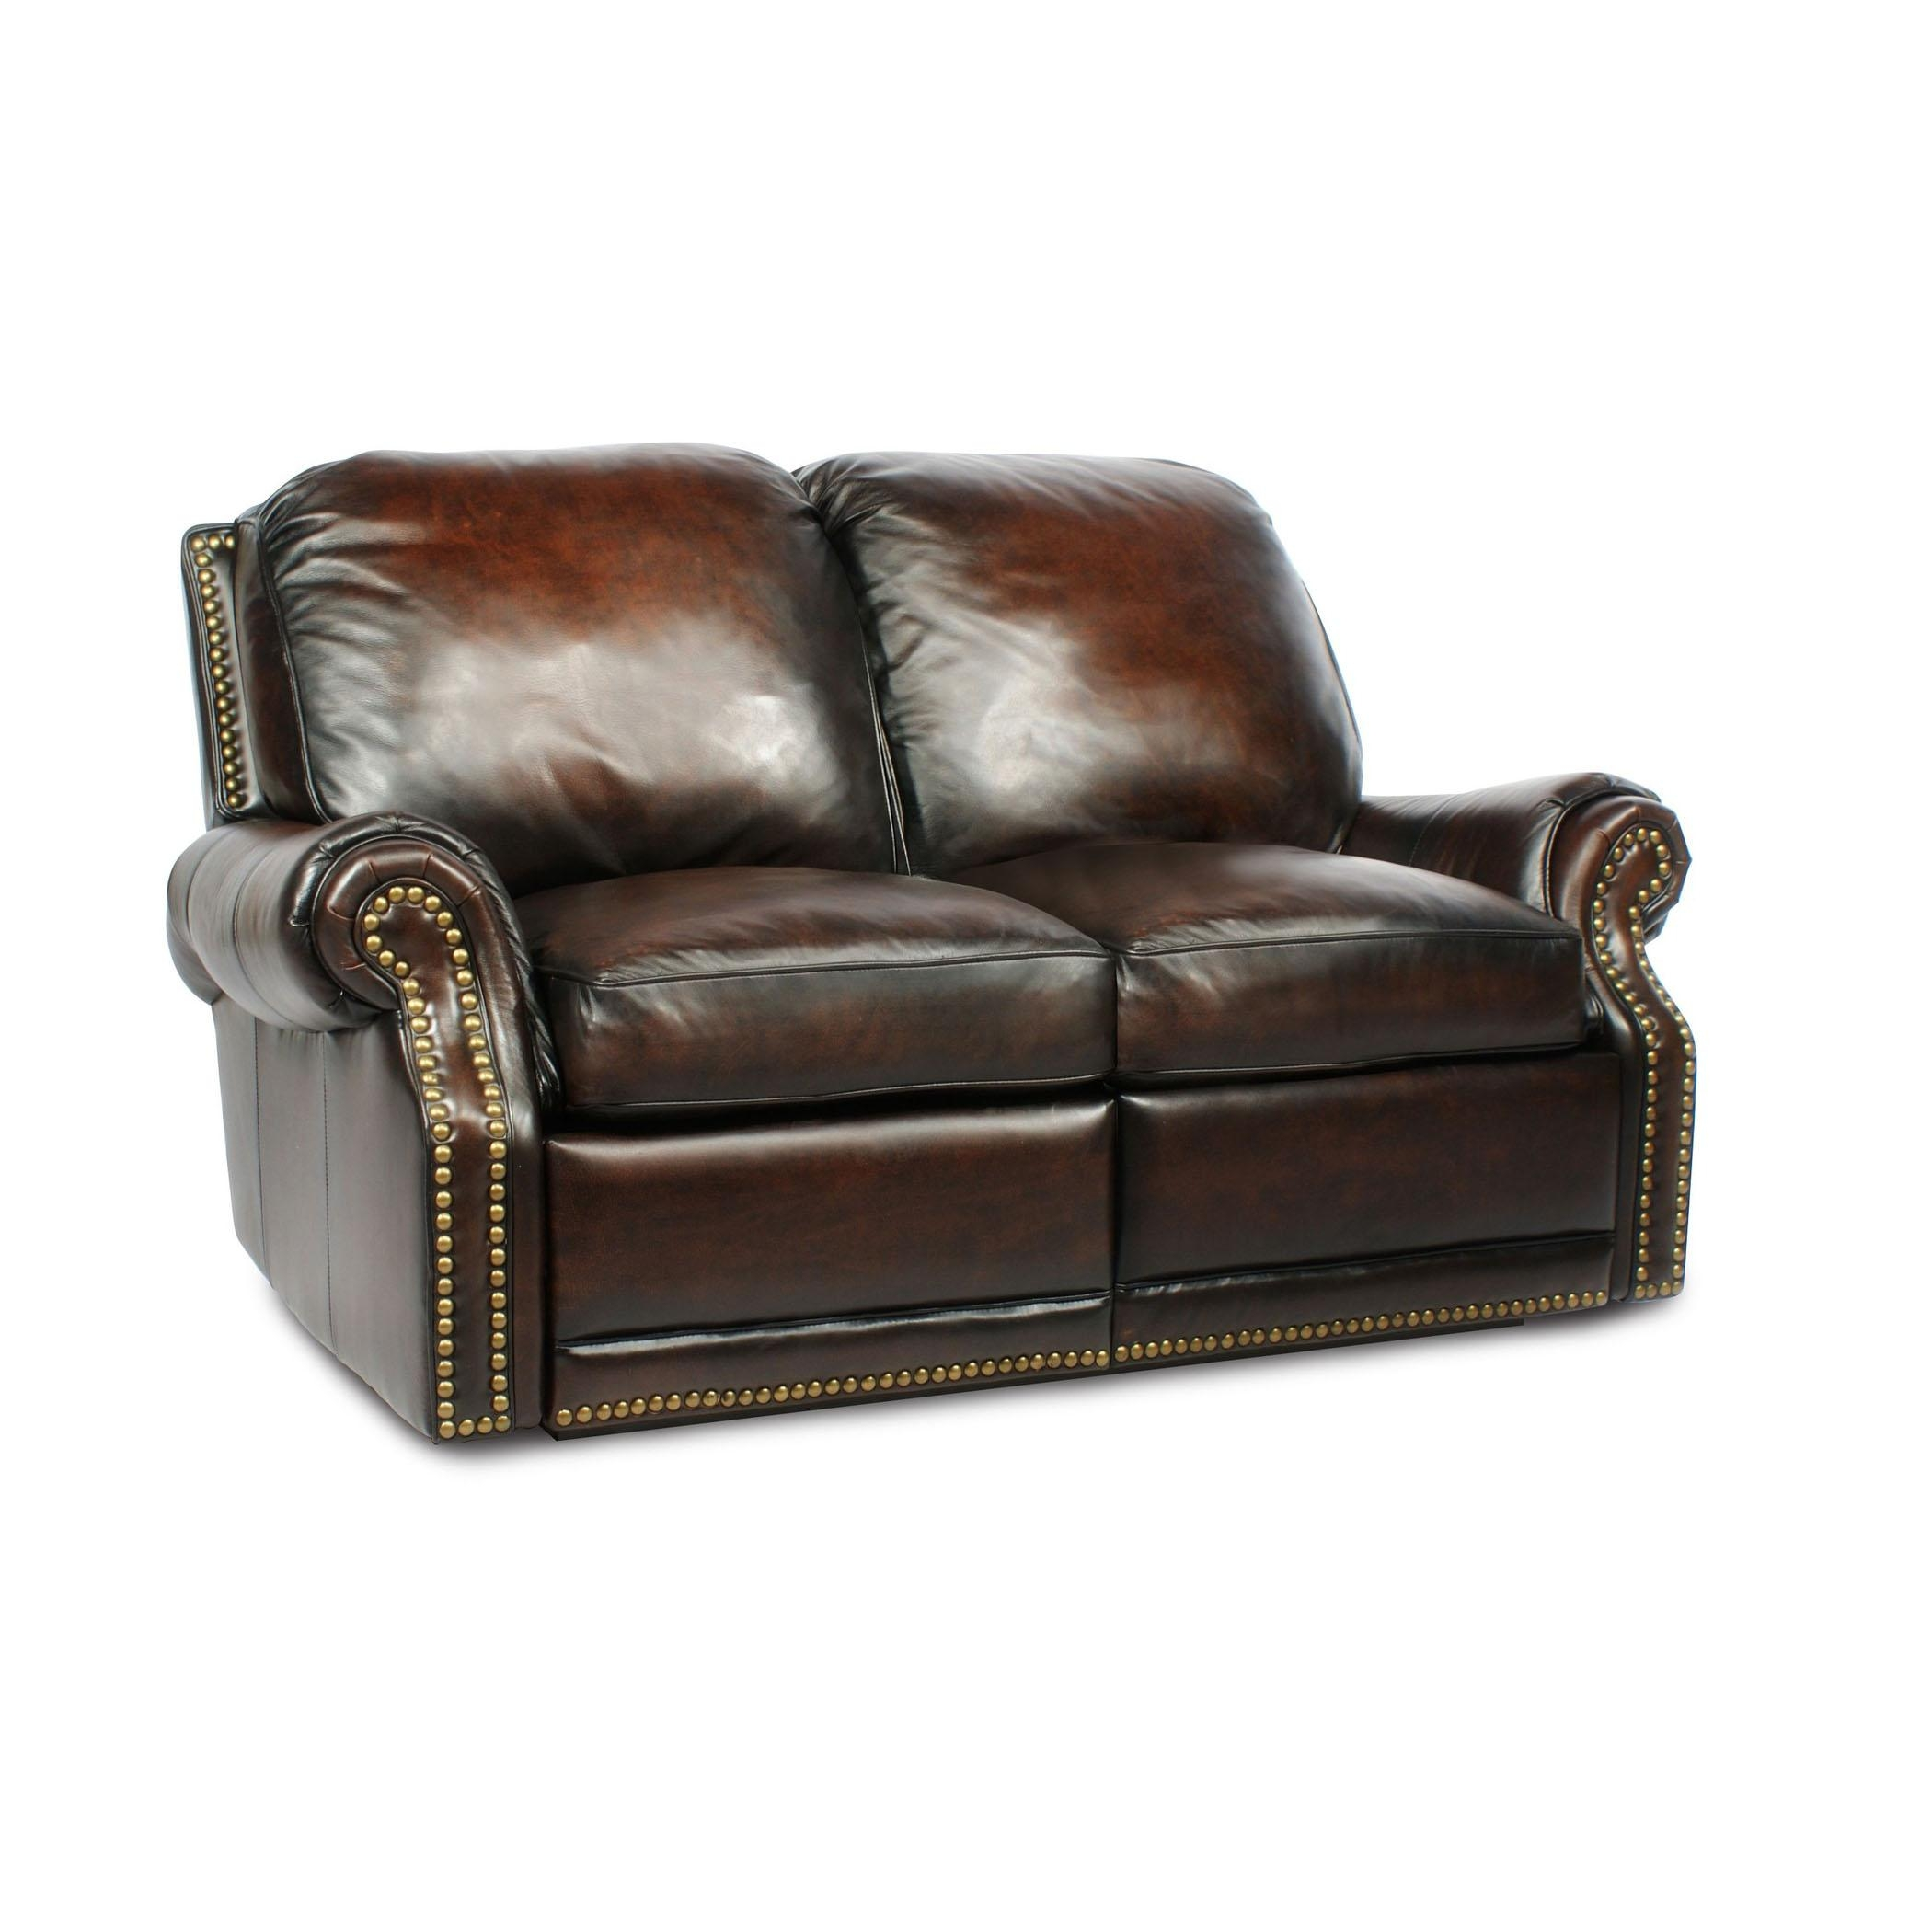 Barcalounger Premier Ii Leather 2 Seat Loveseat Sofa – Leather 2 For Barcalounger Sofas (View 6 of 20)